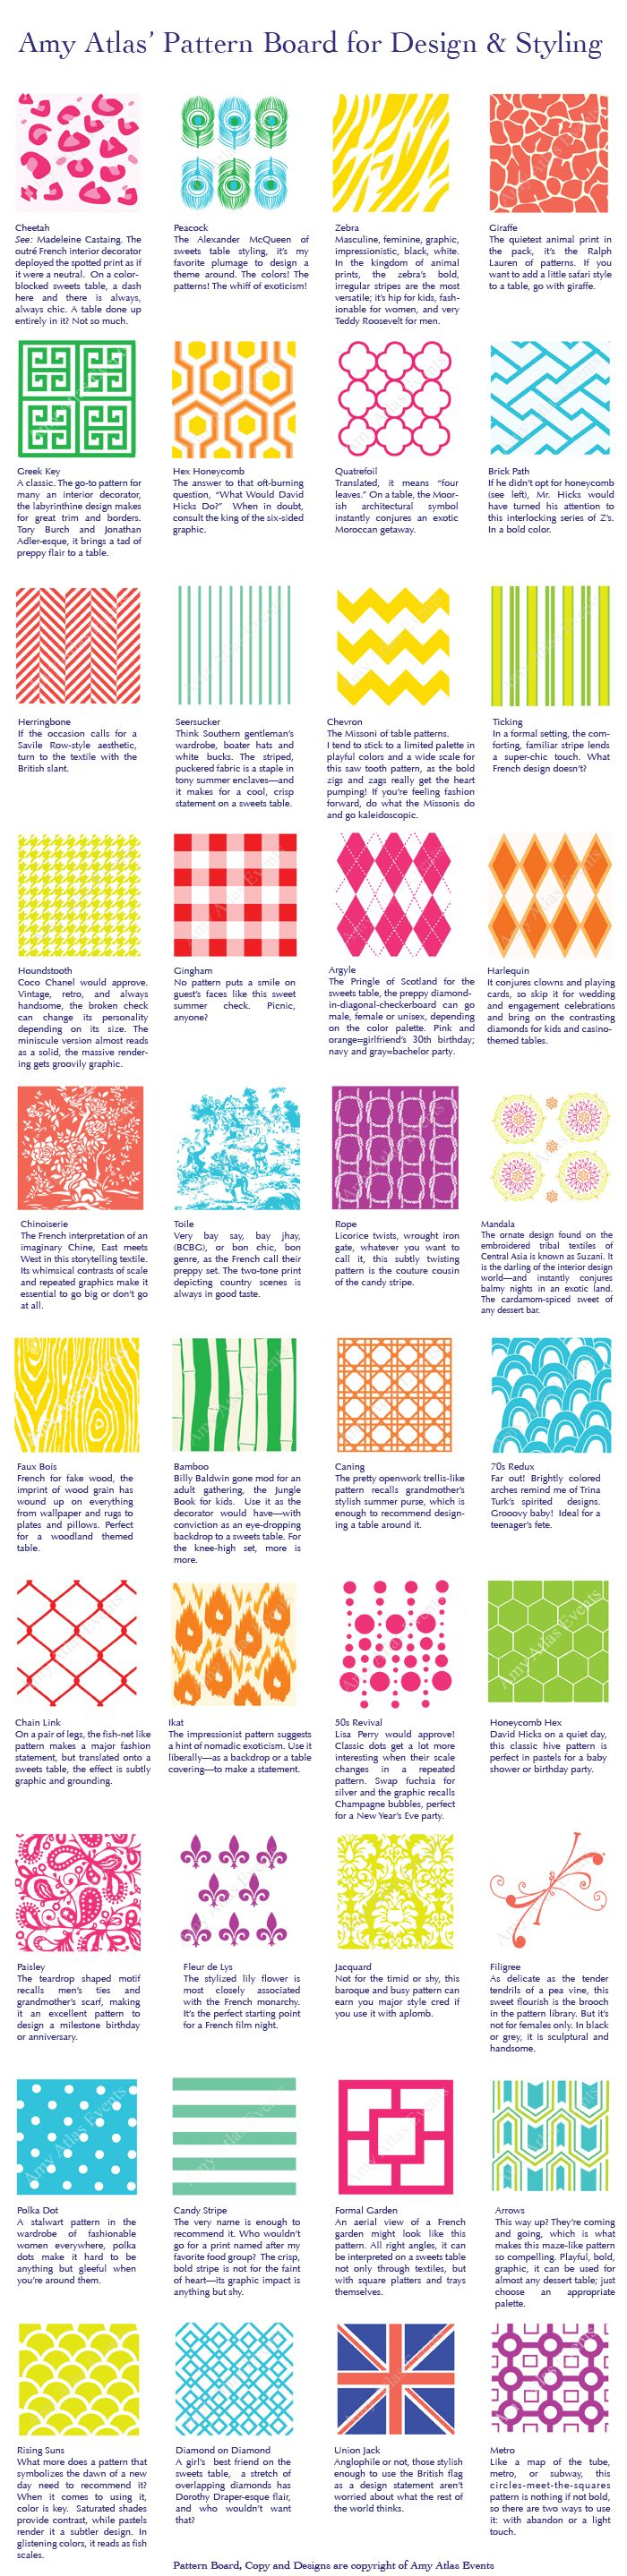 Did you ever walk into a store and see a pattern on a tunic, rug, or lamp shade, but didn't know the name of the pattern?  Think of this as your go-to tool for identifying patterns... Amy Atlas' Pattern Board for Design & Styling!